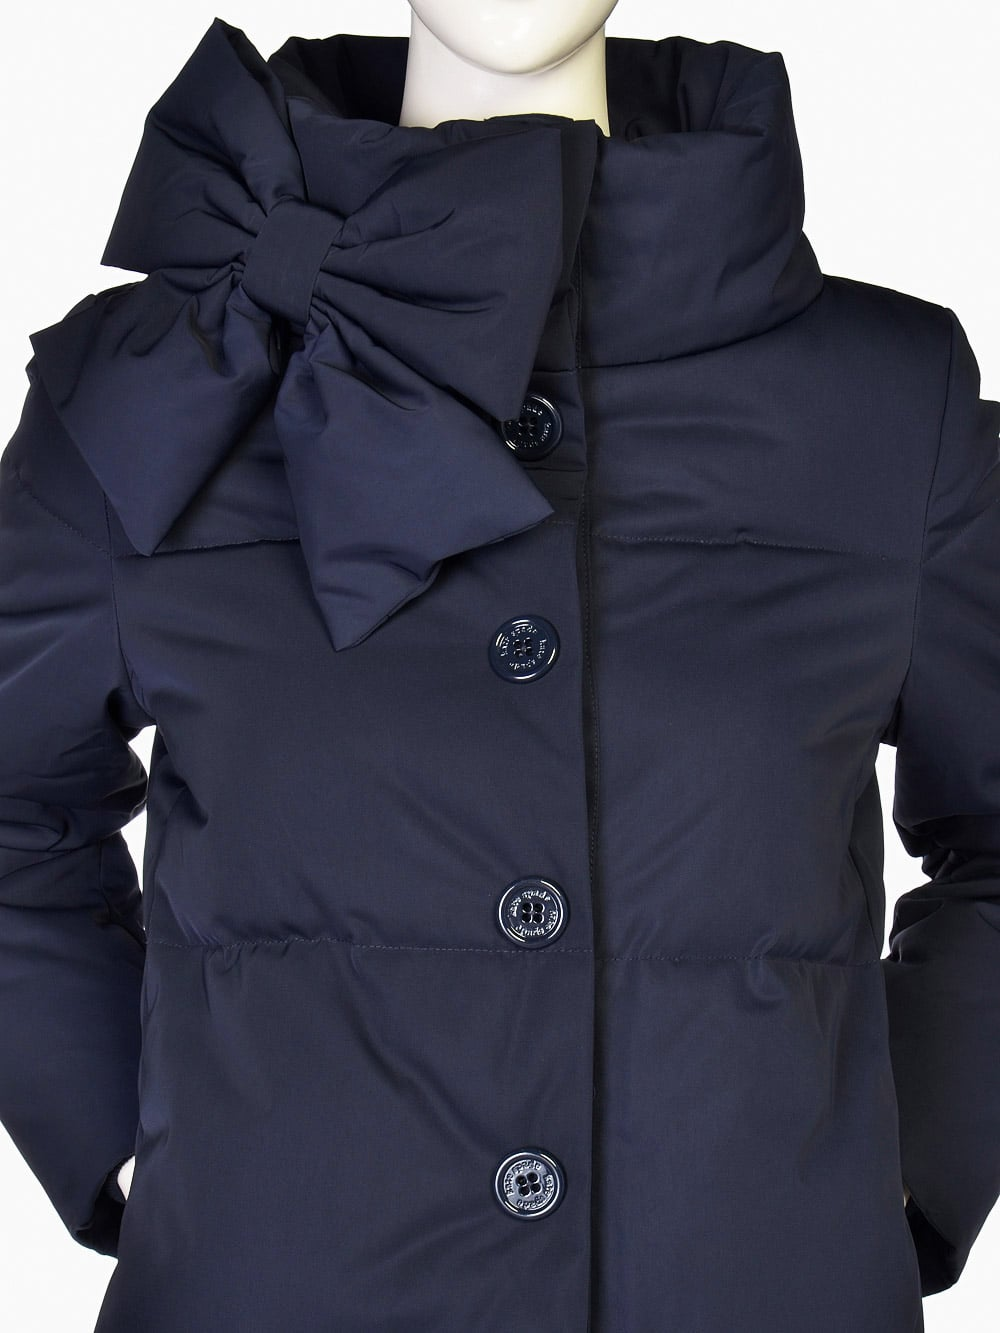 my girly side makes me love this puffer. it adds some whimsy to an otherwise standard coat. get it  here  at kate spade.